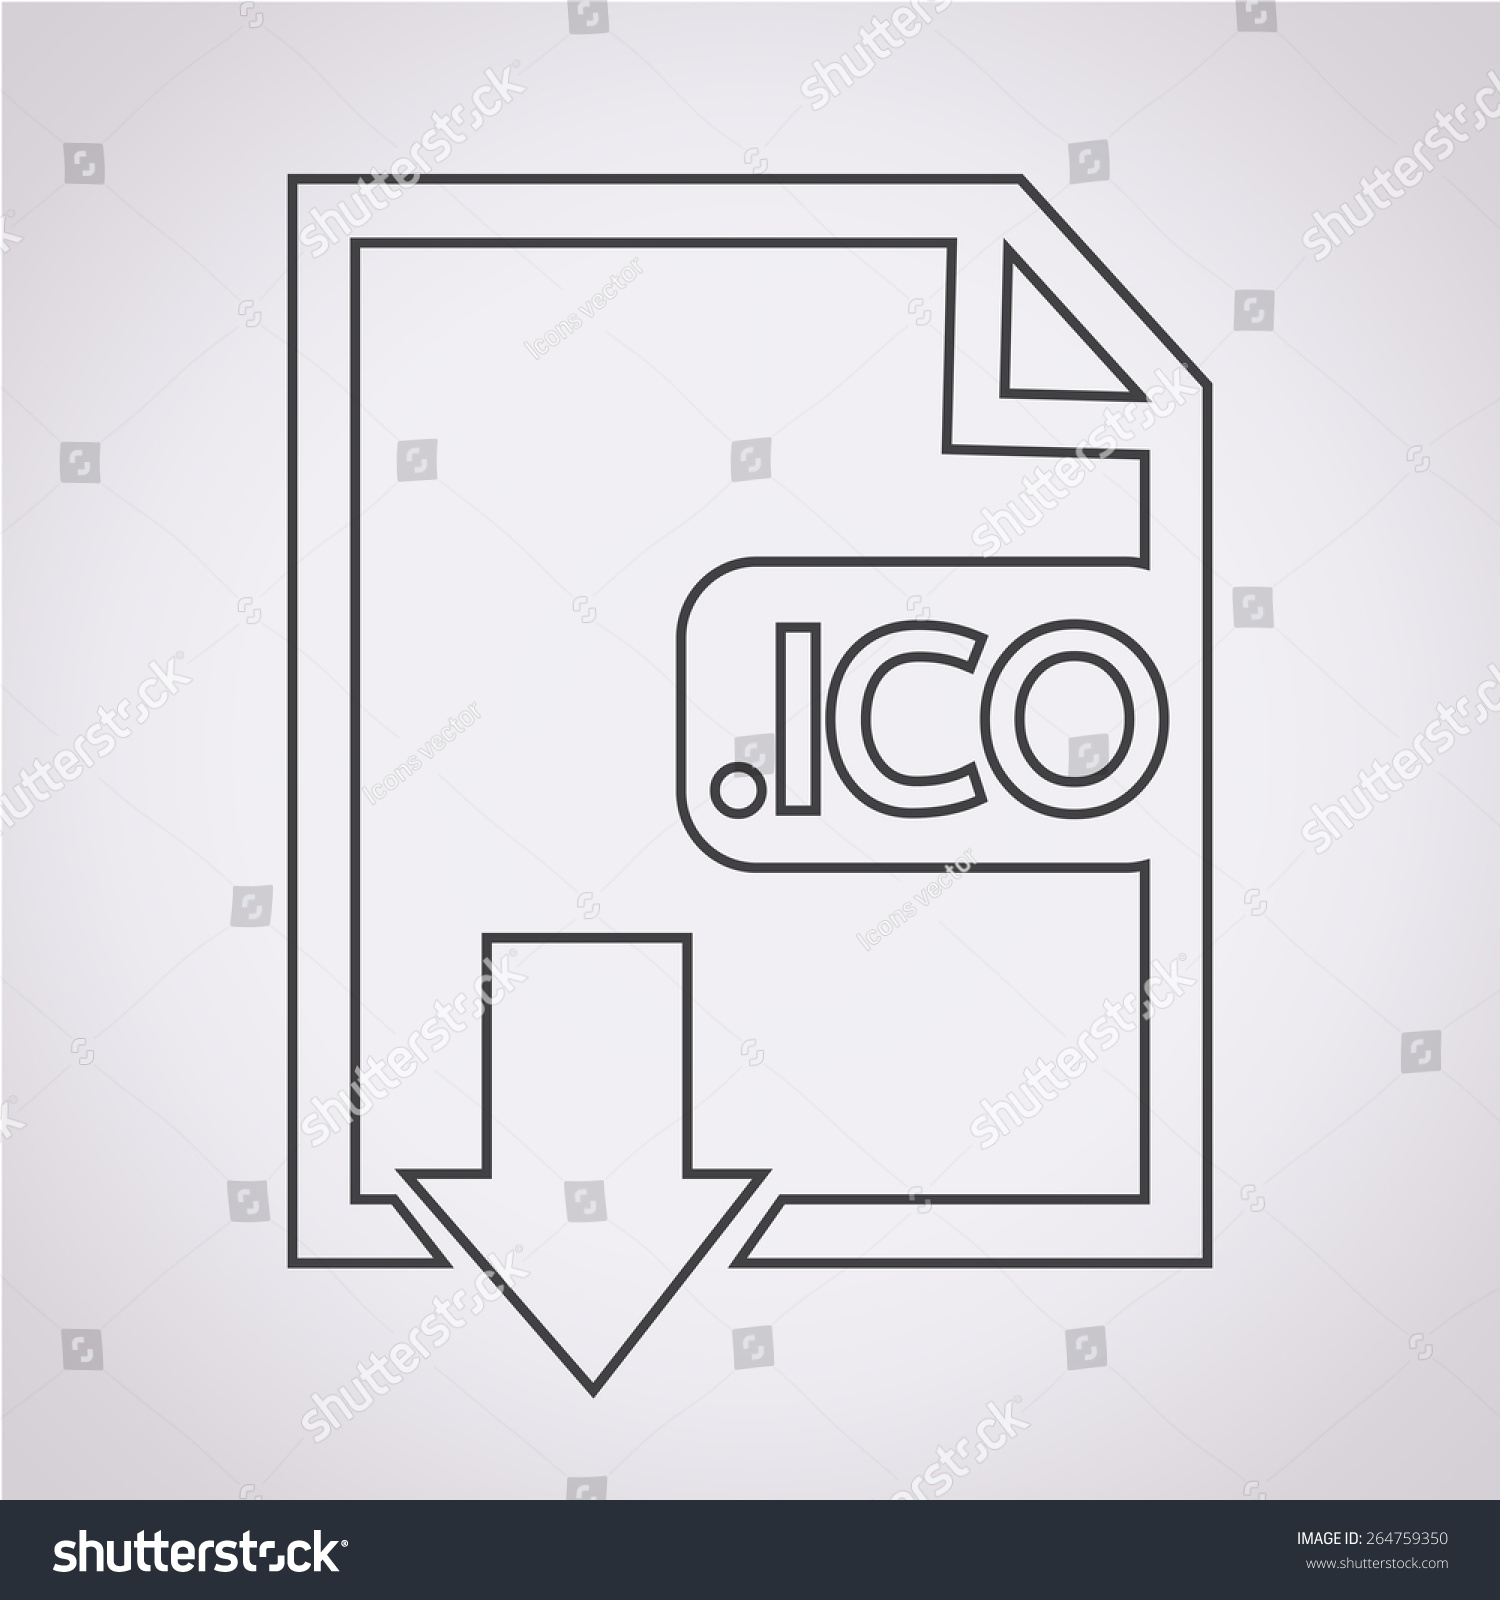 image file type format ico icon stock vector 264759350 shutterstock. Black Bedroom Furniture Sets. Home Design Ideas